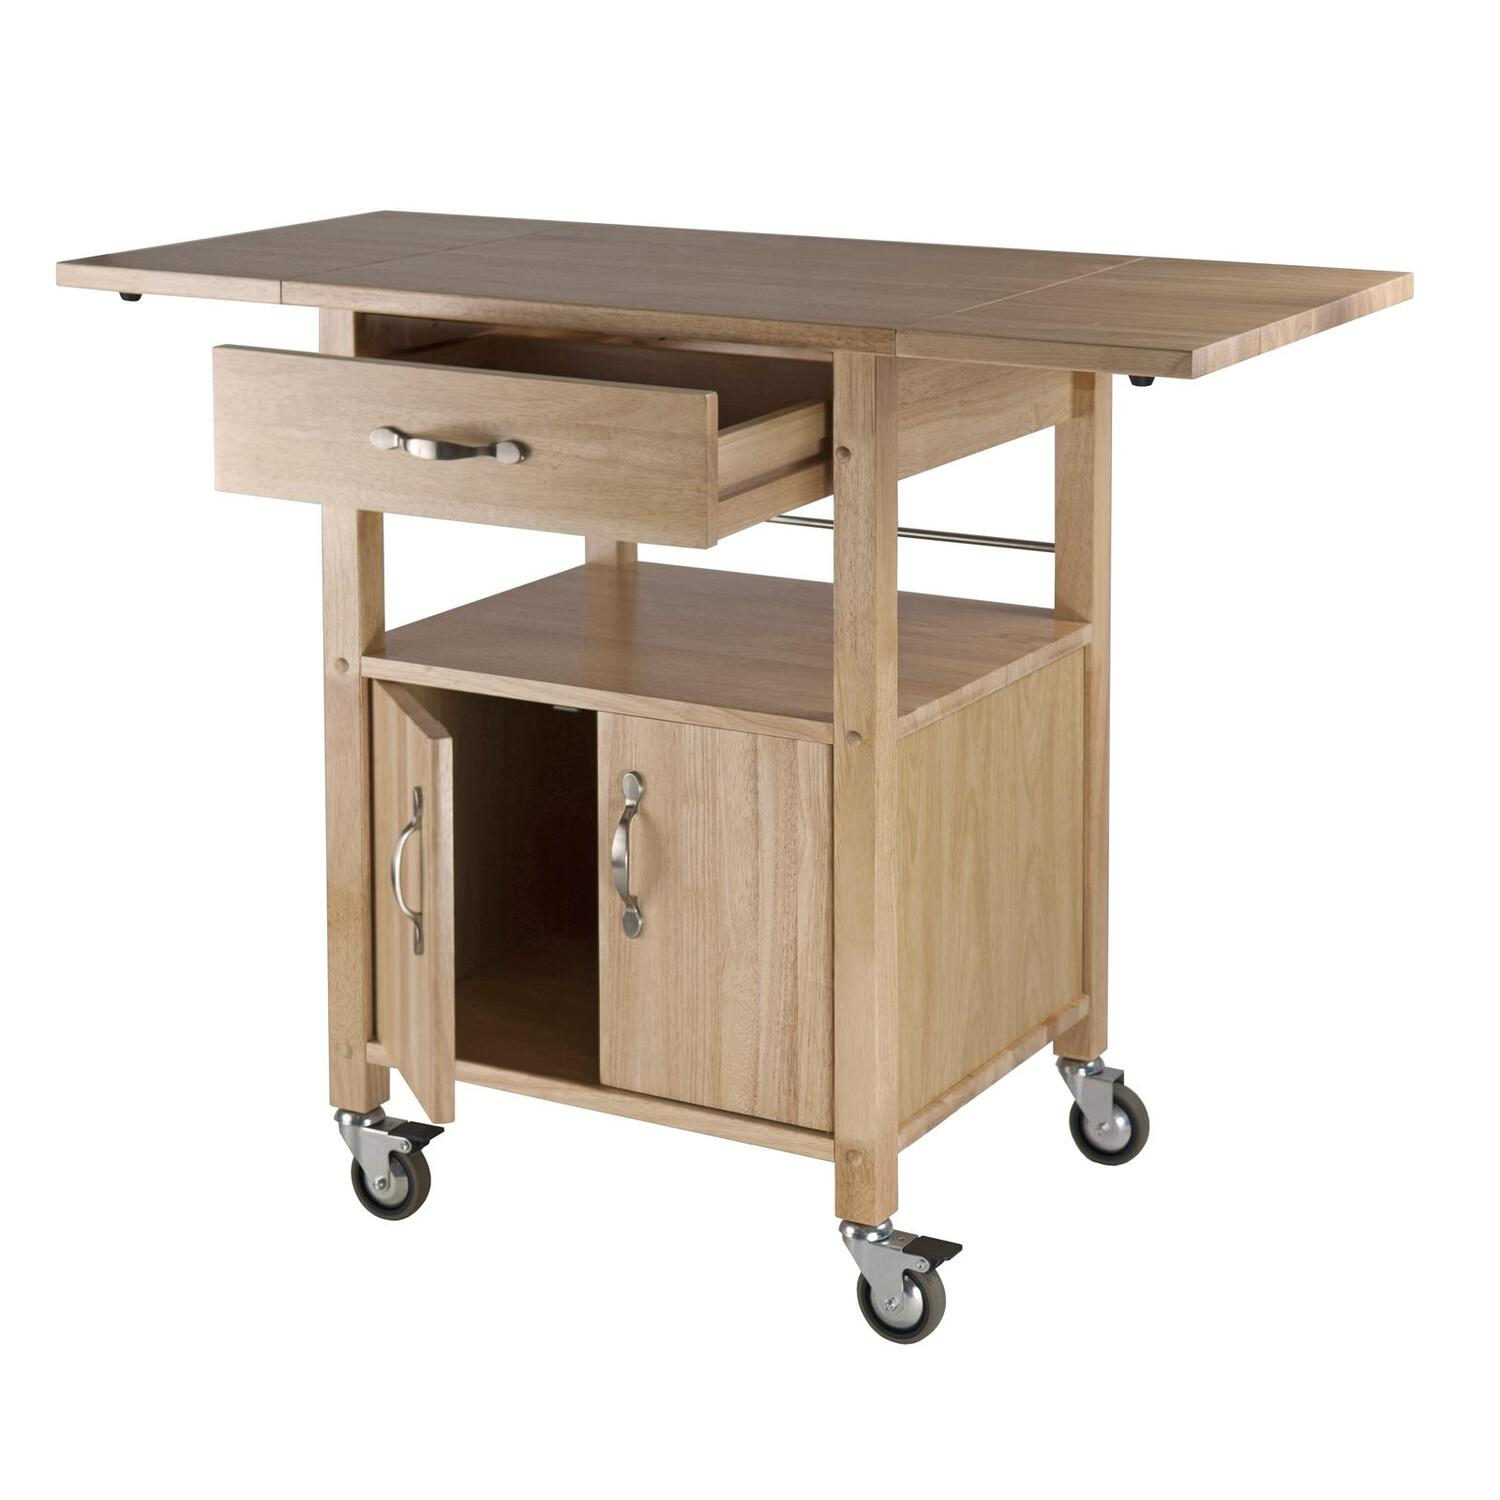 Kitchen Cart, Double Drop Leaf, Cabinet with shelf | OJCommerce